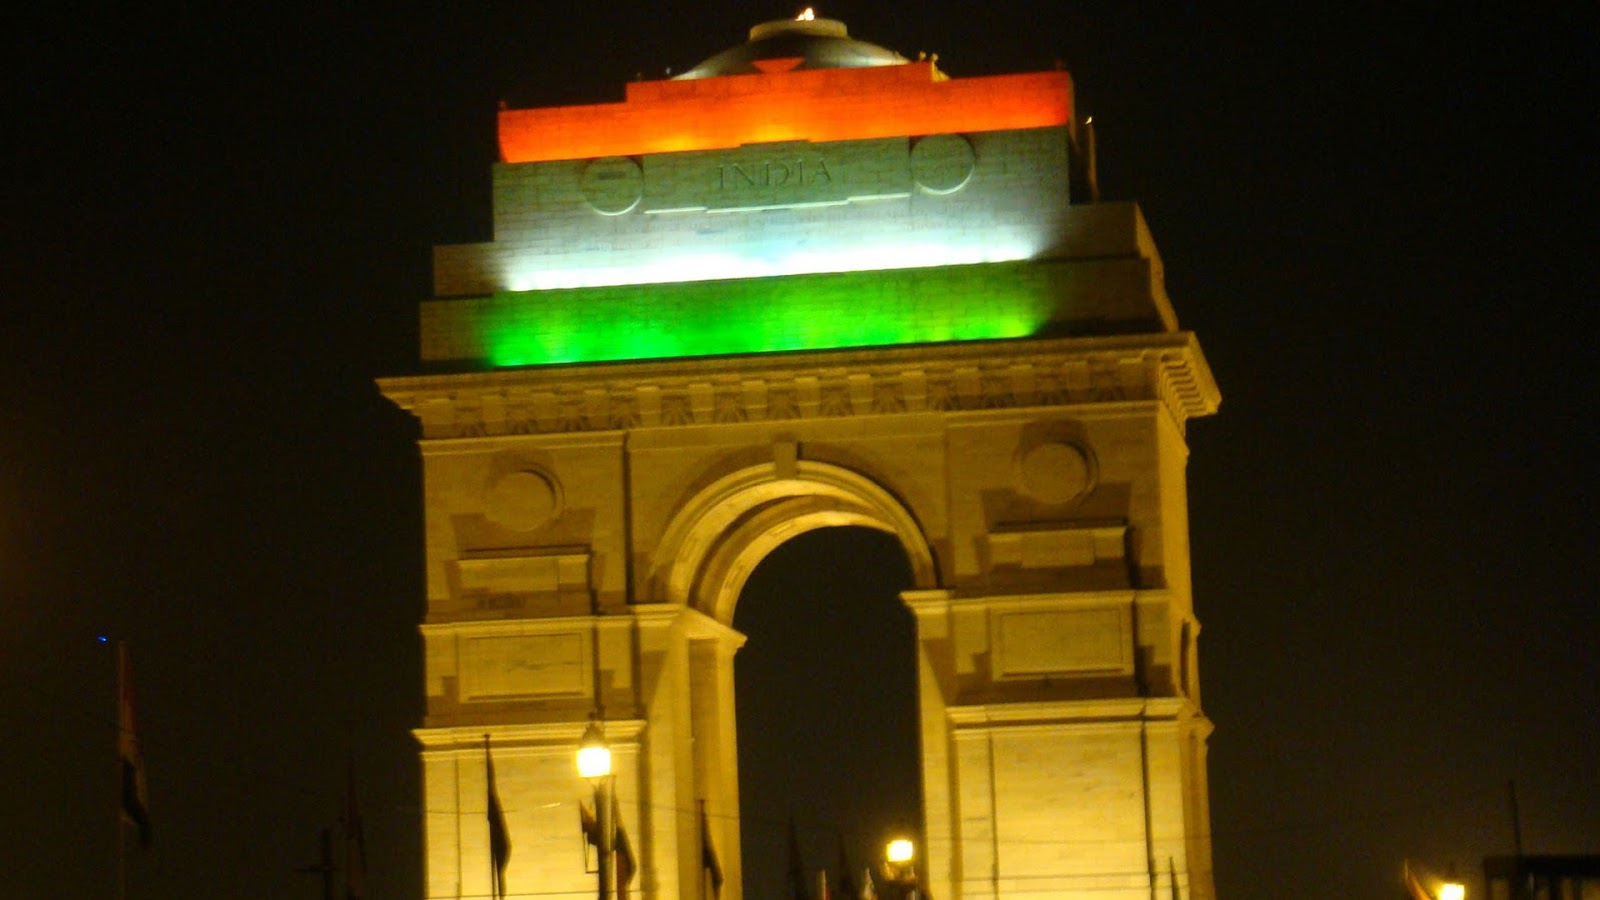 Cinema Wallpapers With Quotes Indian Republic Day Wallpapers 1080p Hd Wallpapers High